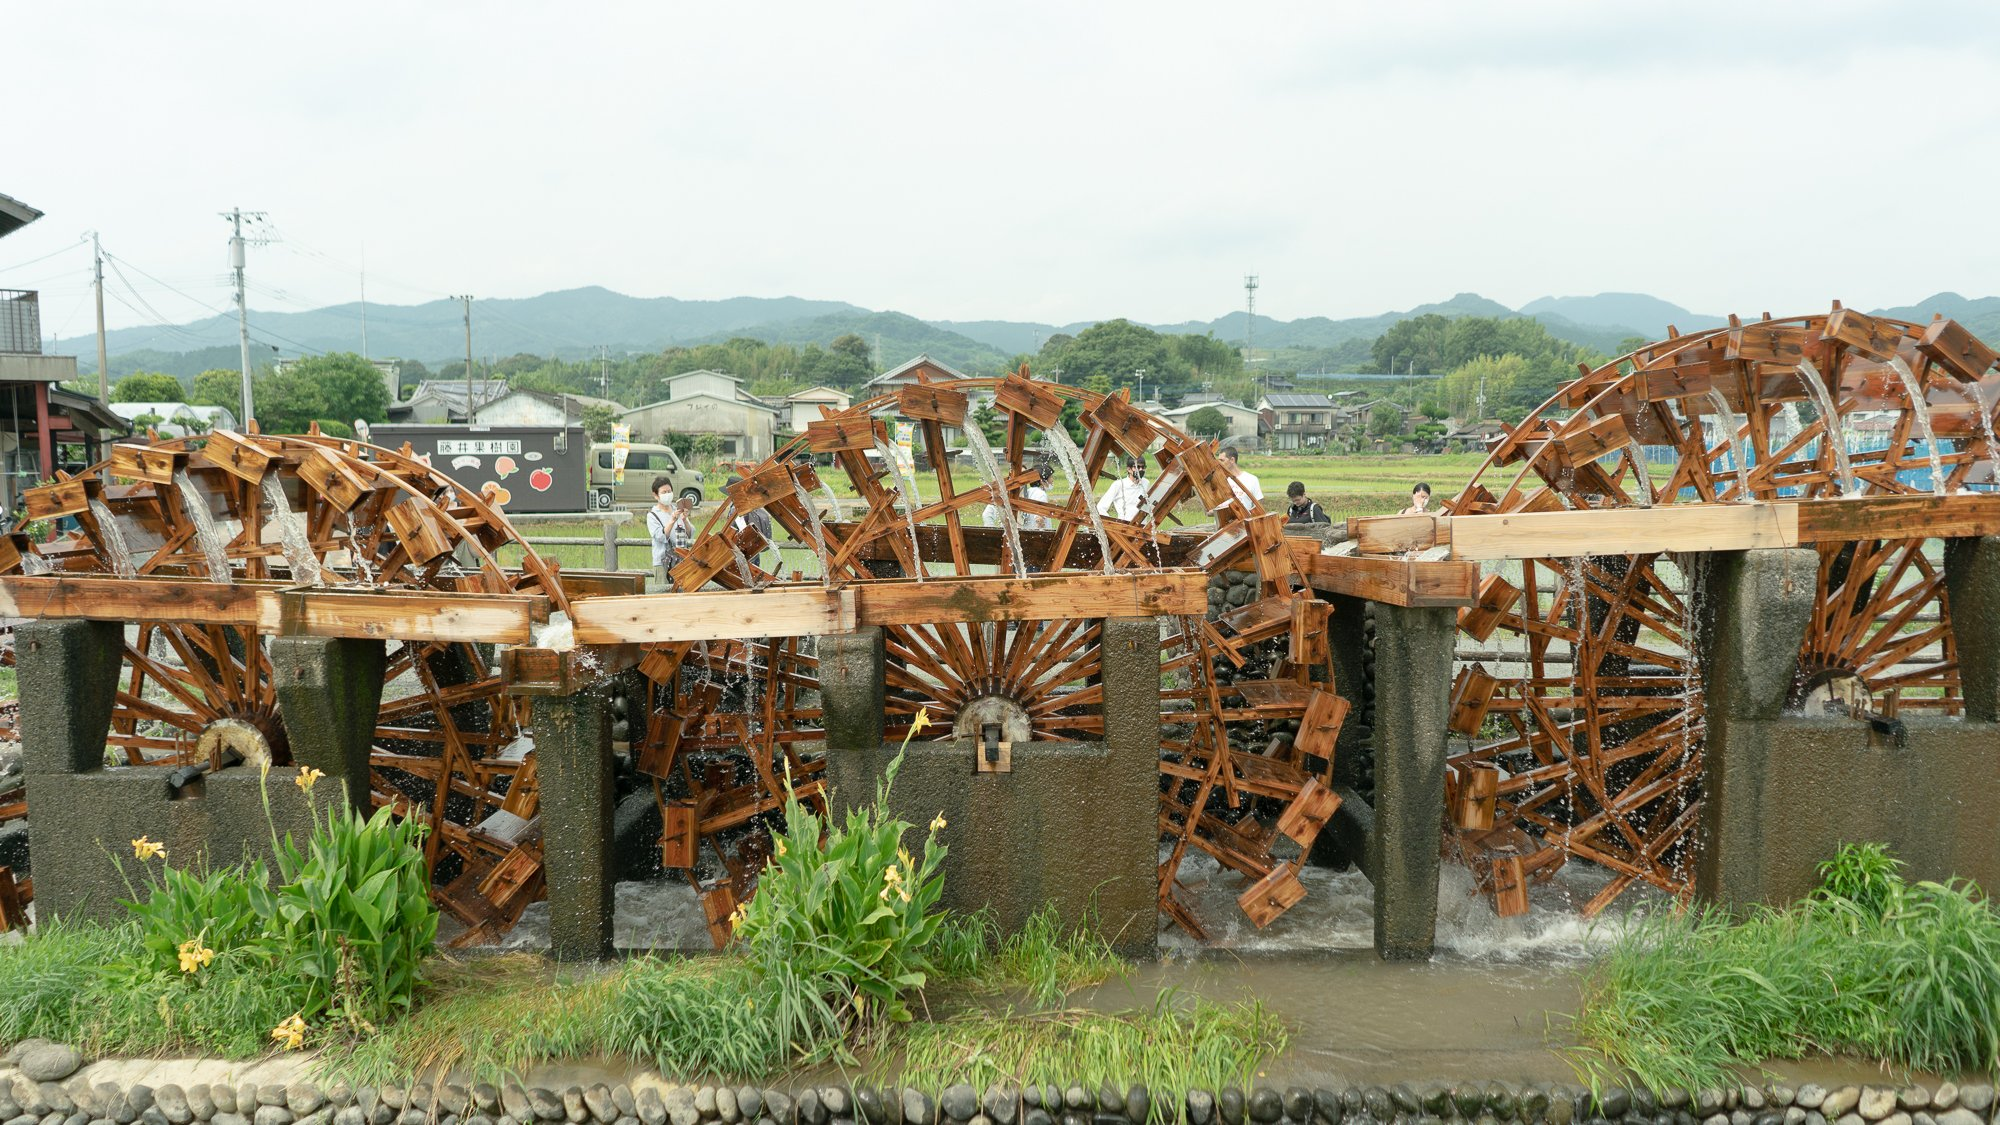 Asakura Water Wheels